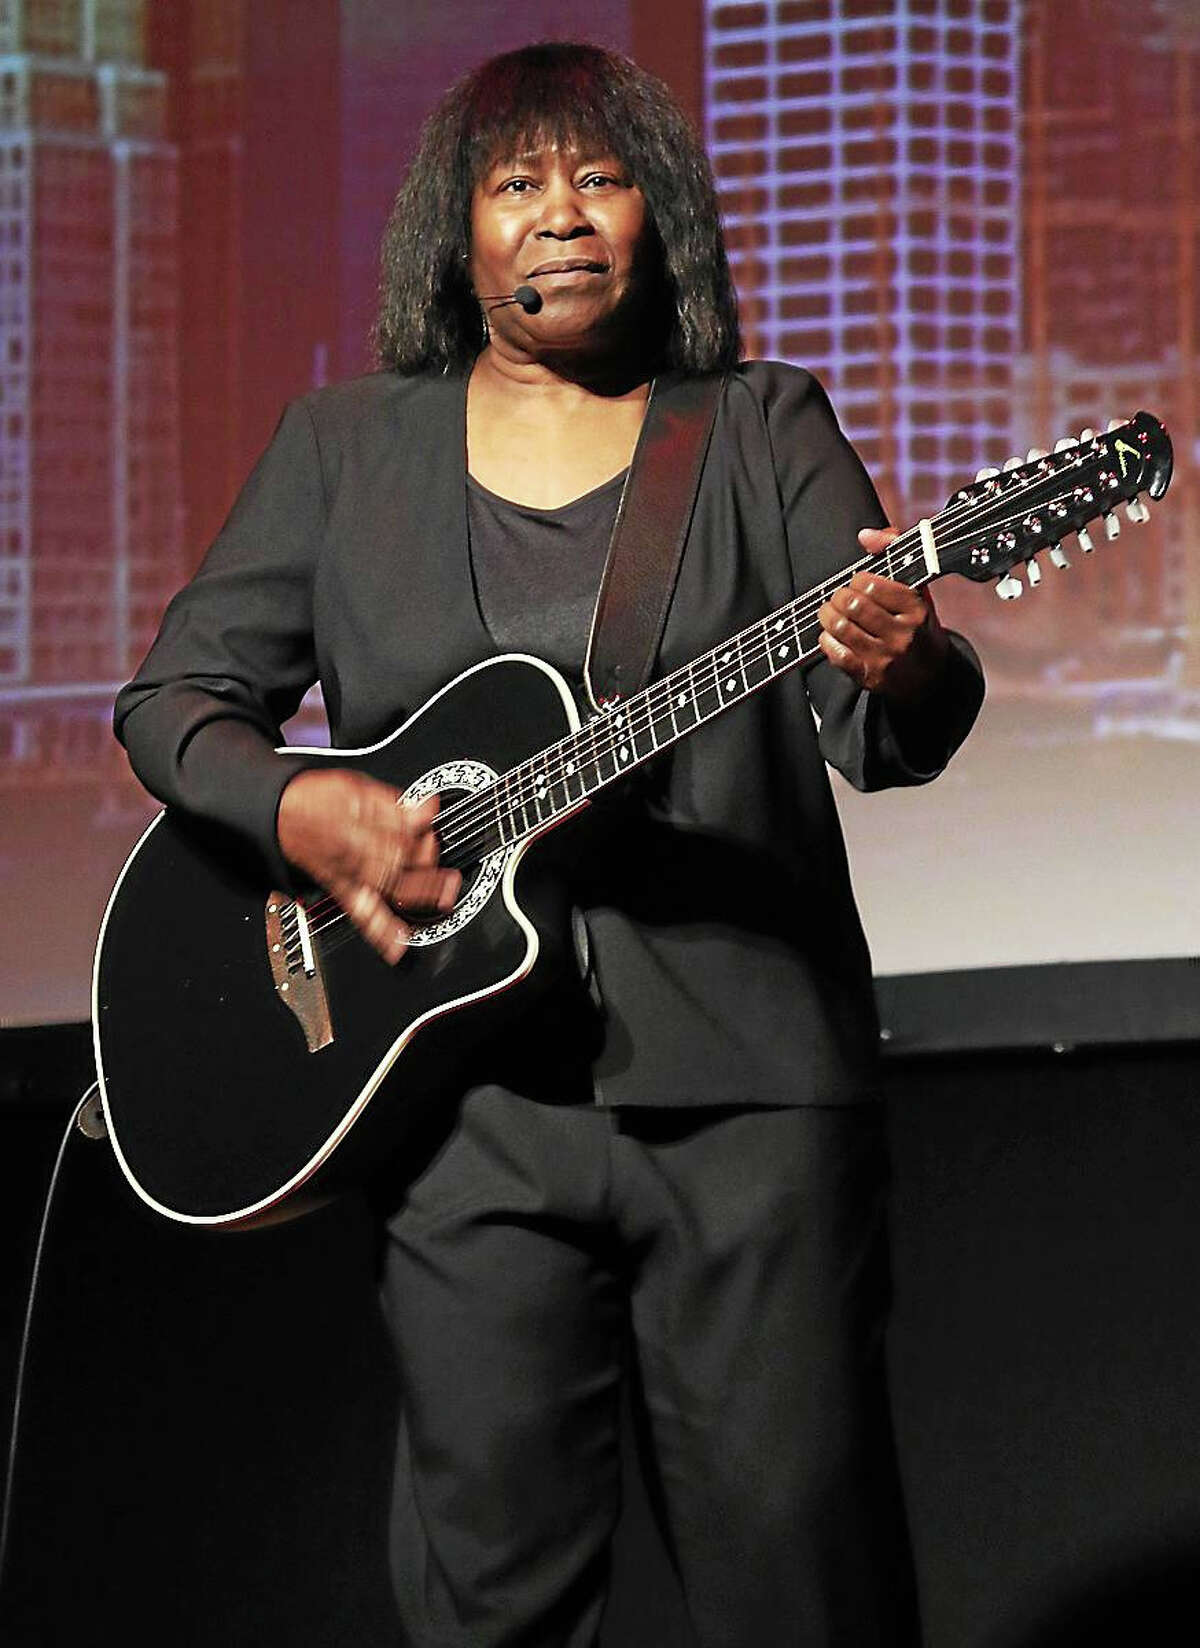 """Photo by John AtashianBritish singer, songwriter and guitarist Joan Armatrading is shown performing on stage at Infinity Music Hall during her""""concert appearance on Oct. 30. Joan is a three-time Grammy Award nominee, Armatrading was nominated twice for Brit Awards as Best Female Artist. She also received an Ivor Novello Award for Outstanding Contemporary Song Collection in 1996. She is currently on her final world tour. To learn more about the long list of entertainment coming to Infinity Music Hall you can visit www.infinityhall.com"""